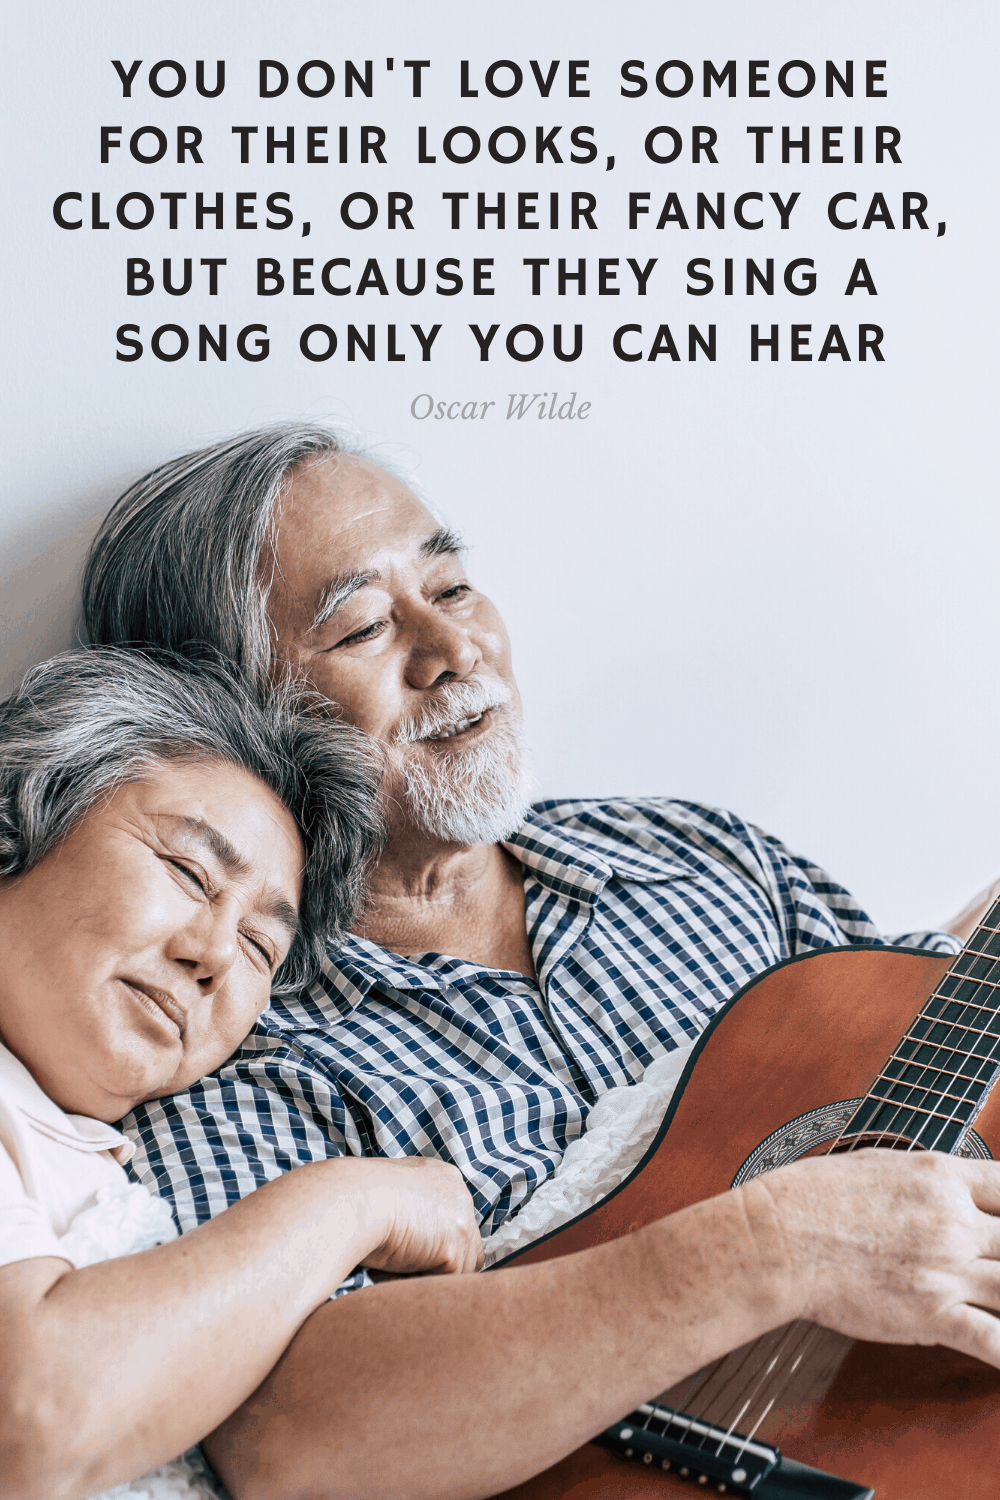 Love is sing a song only you can hear